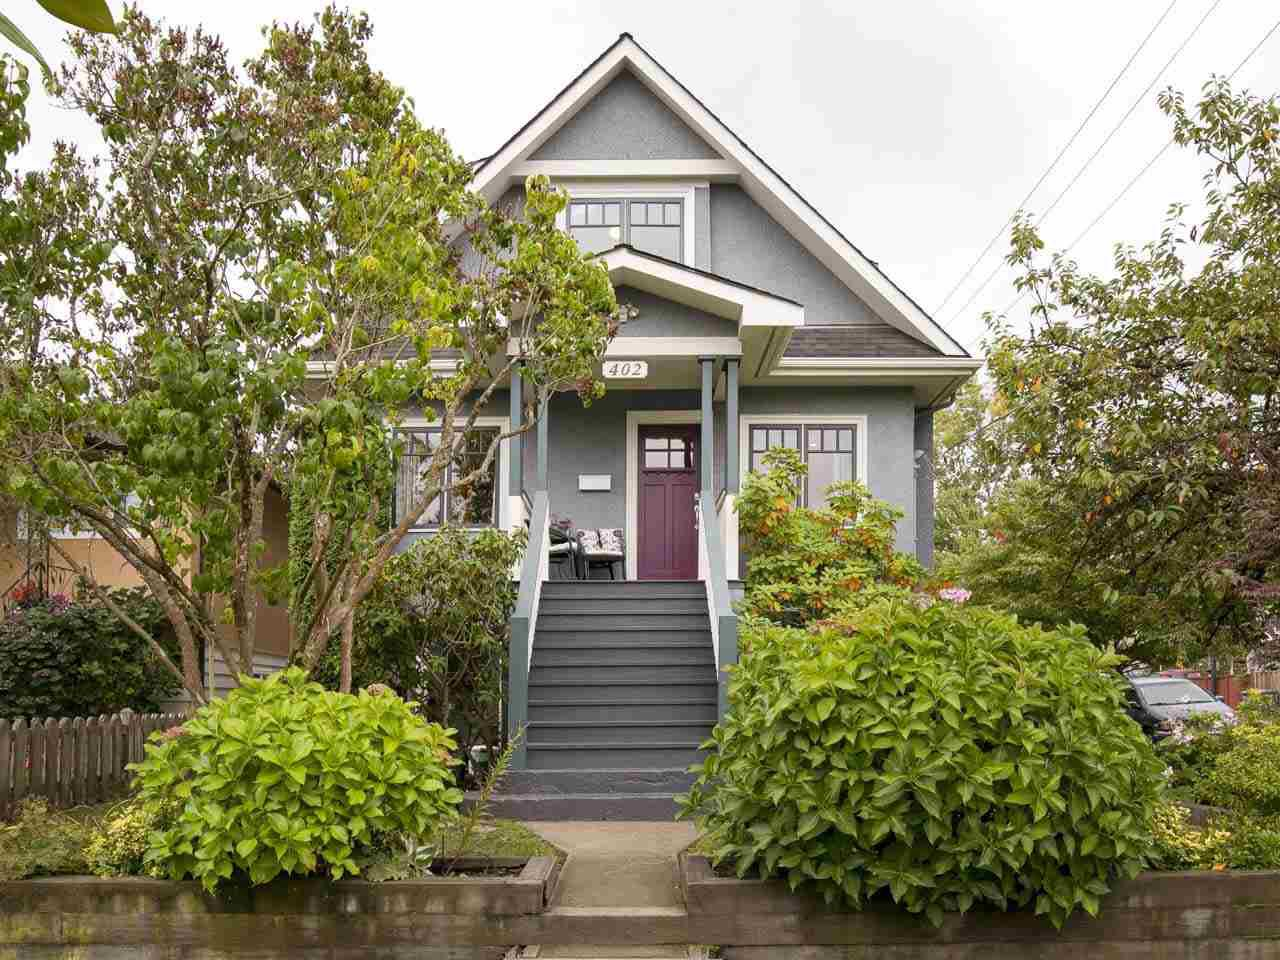 """Main Photo: 402 E 30TH Avenue in Vancouver: Fraser VE House for sale in """"Main Street"""" (Vancouver East)  : MLS®# R2212798"""